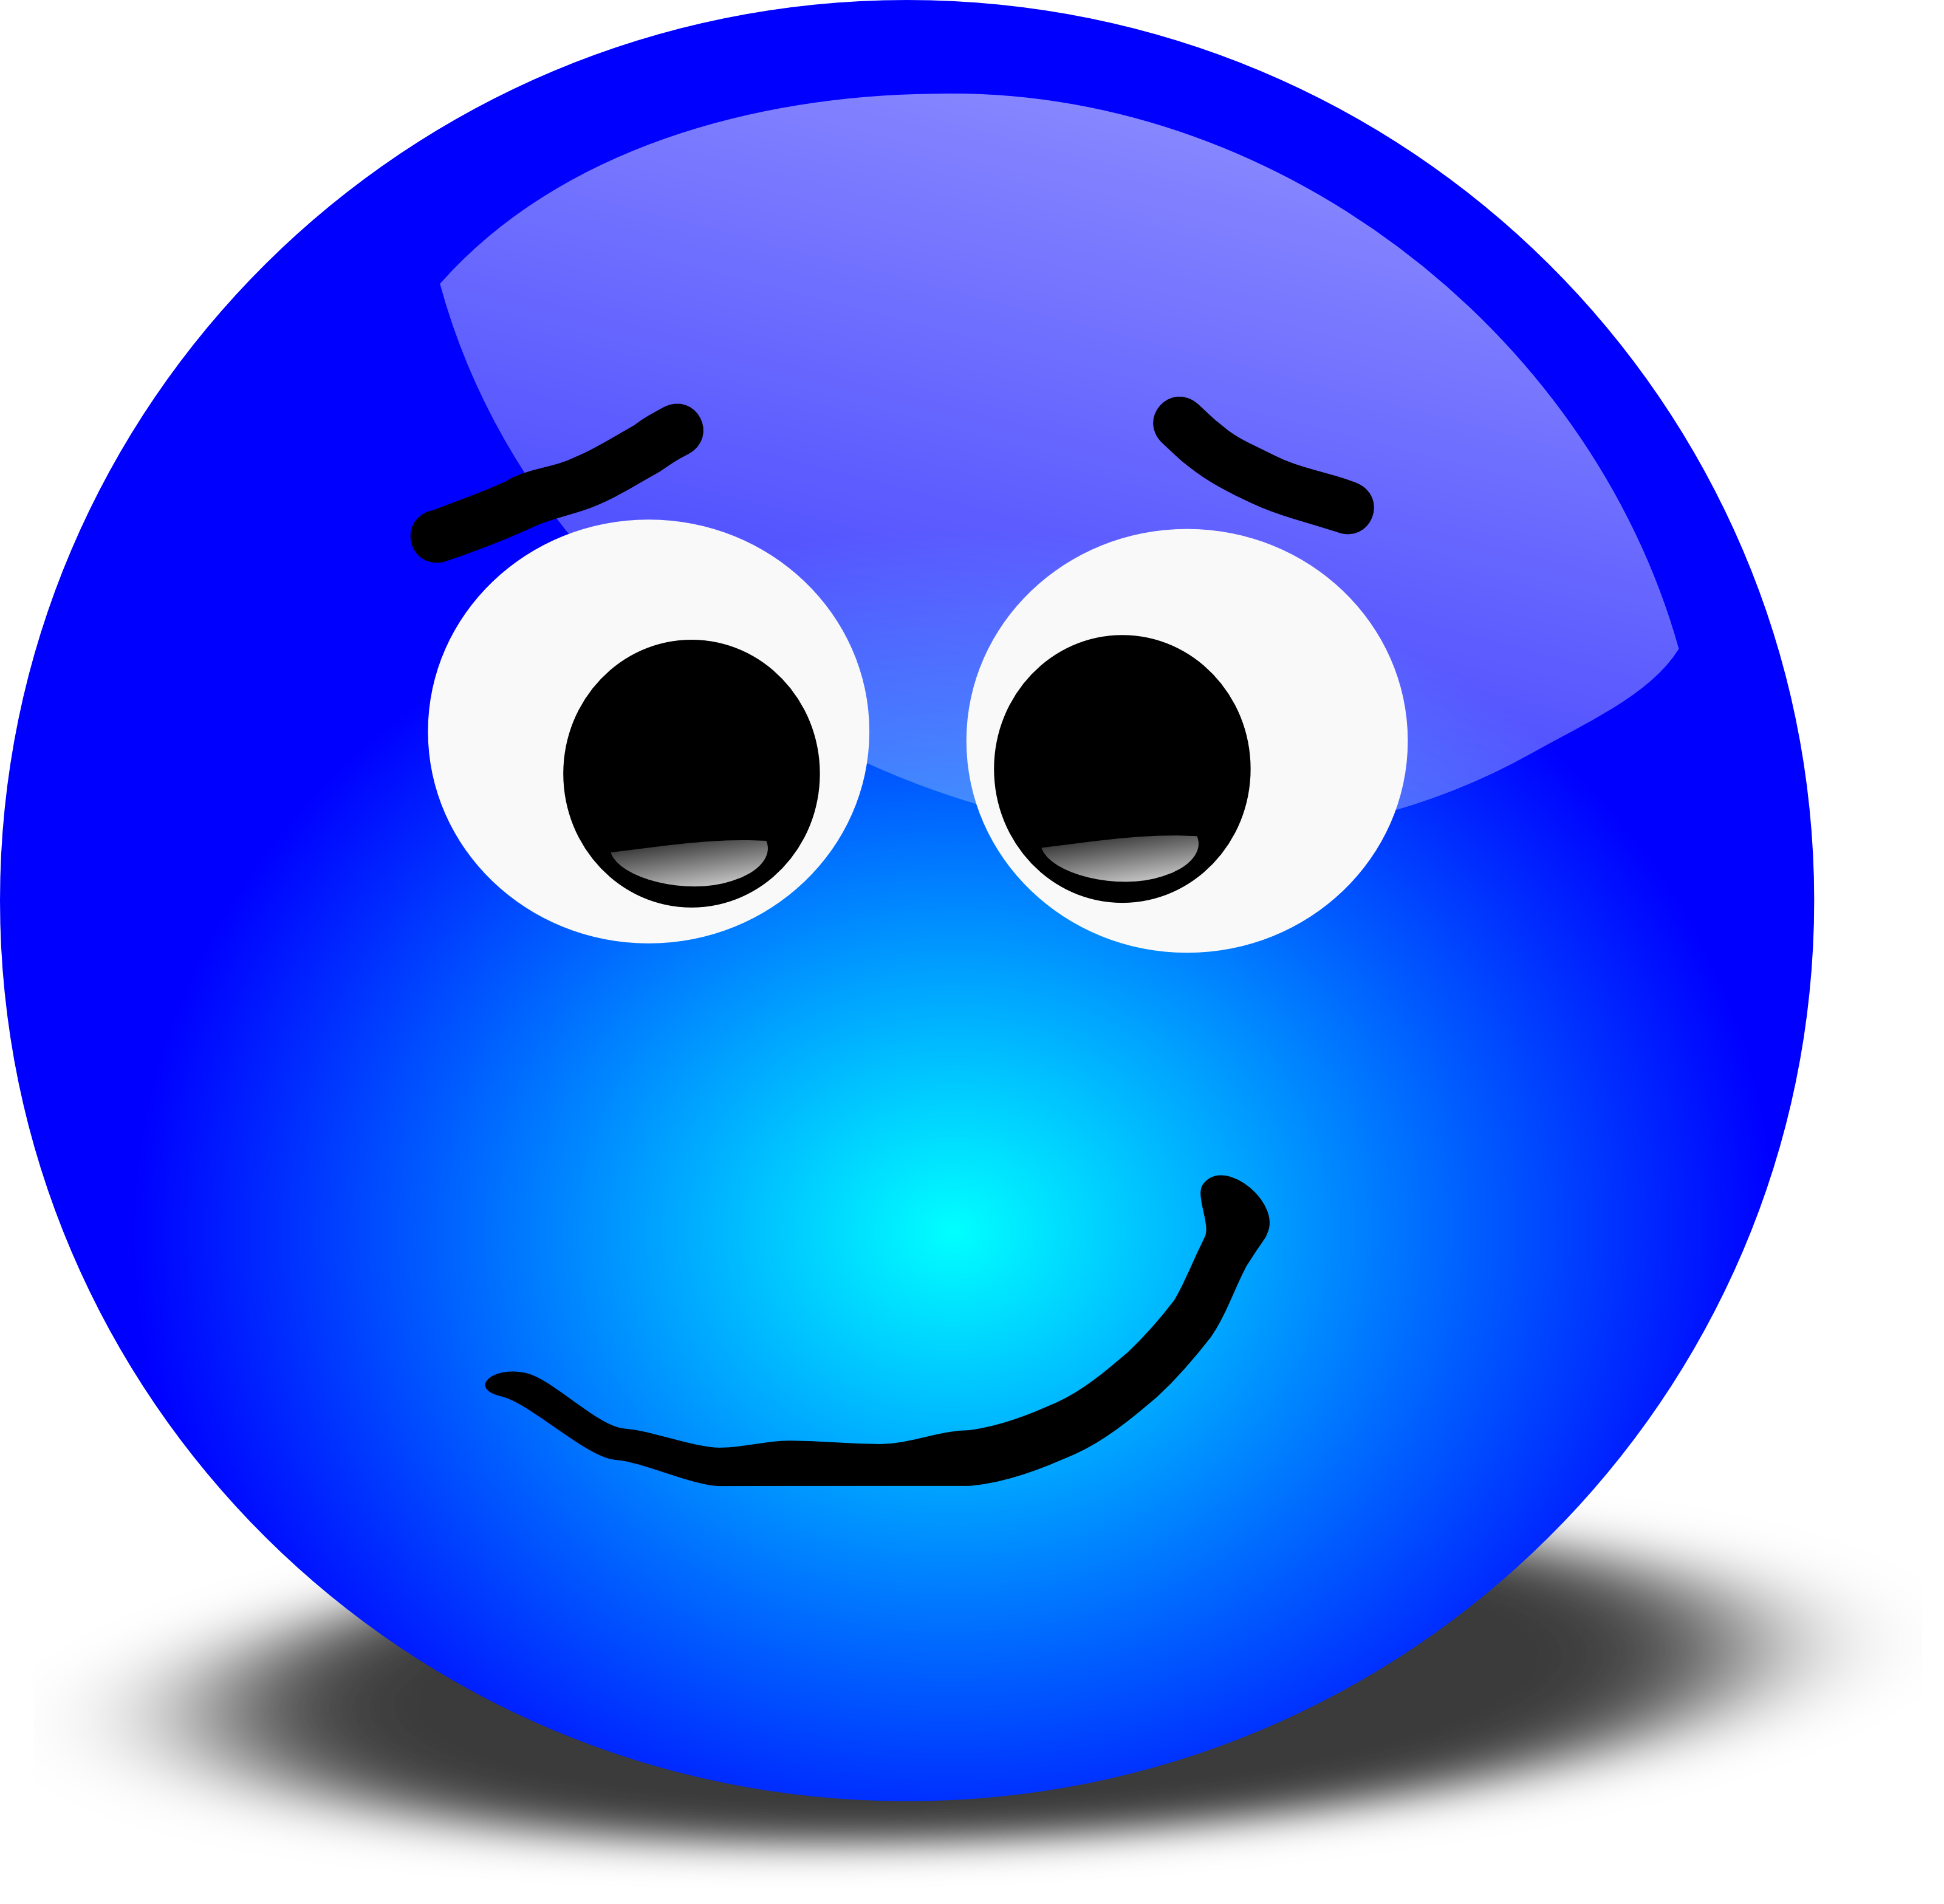 Free 3d Apprehensive Smiley Face Clipart Illustration